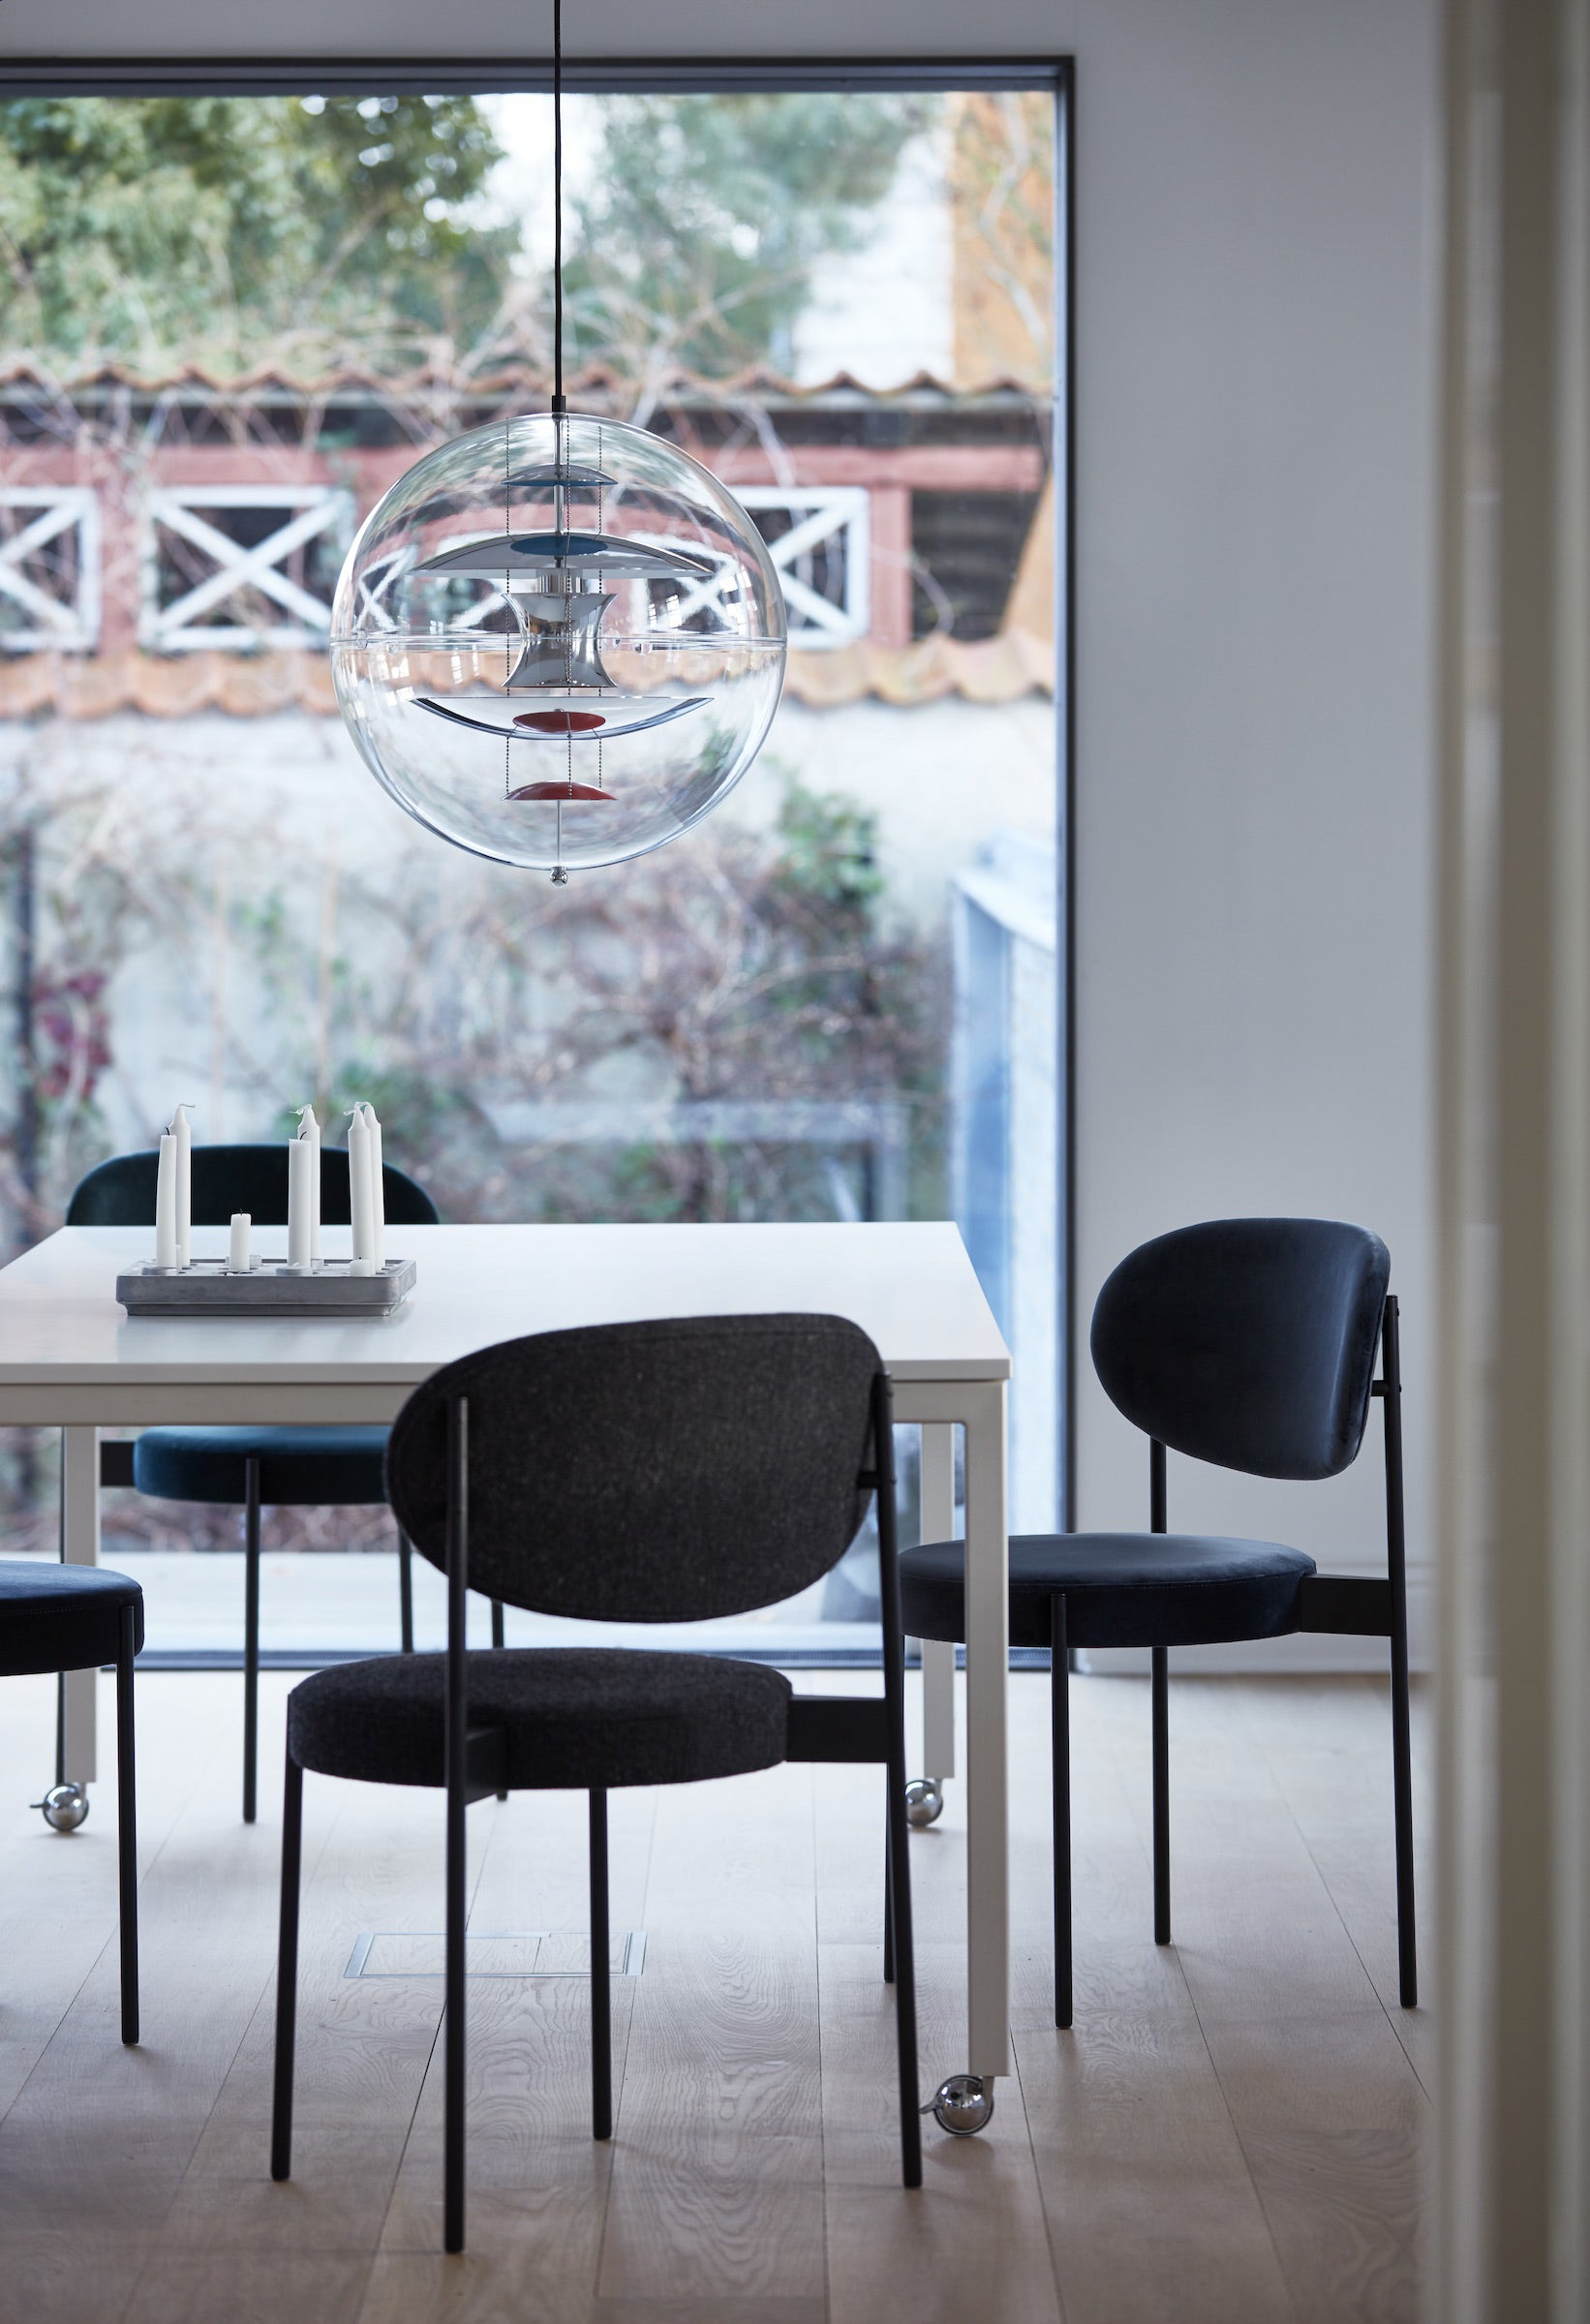 verner-panton-contemporary-dining-chairs-upholstered-oval-backrest-round-seat-metal-base-kvadrat-fabric